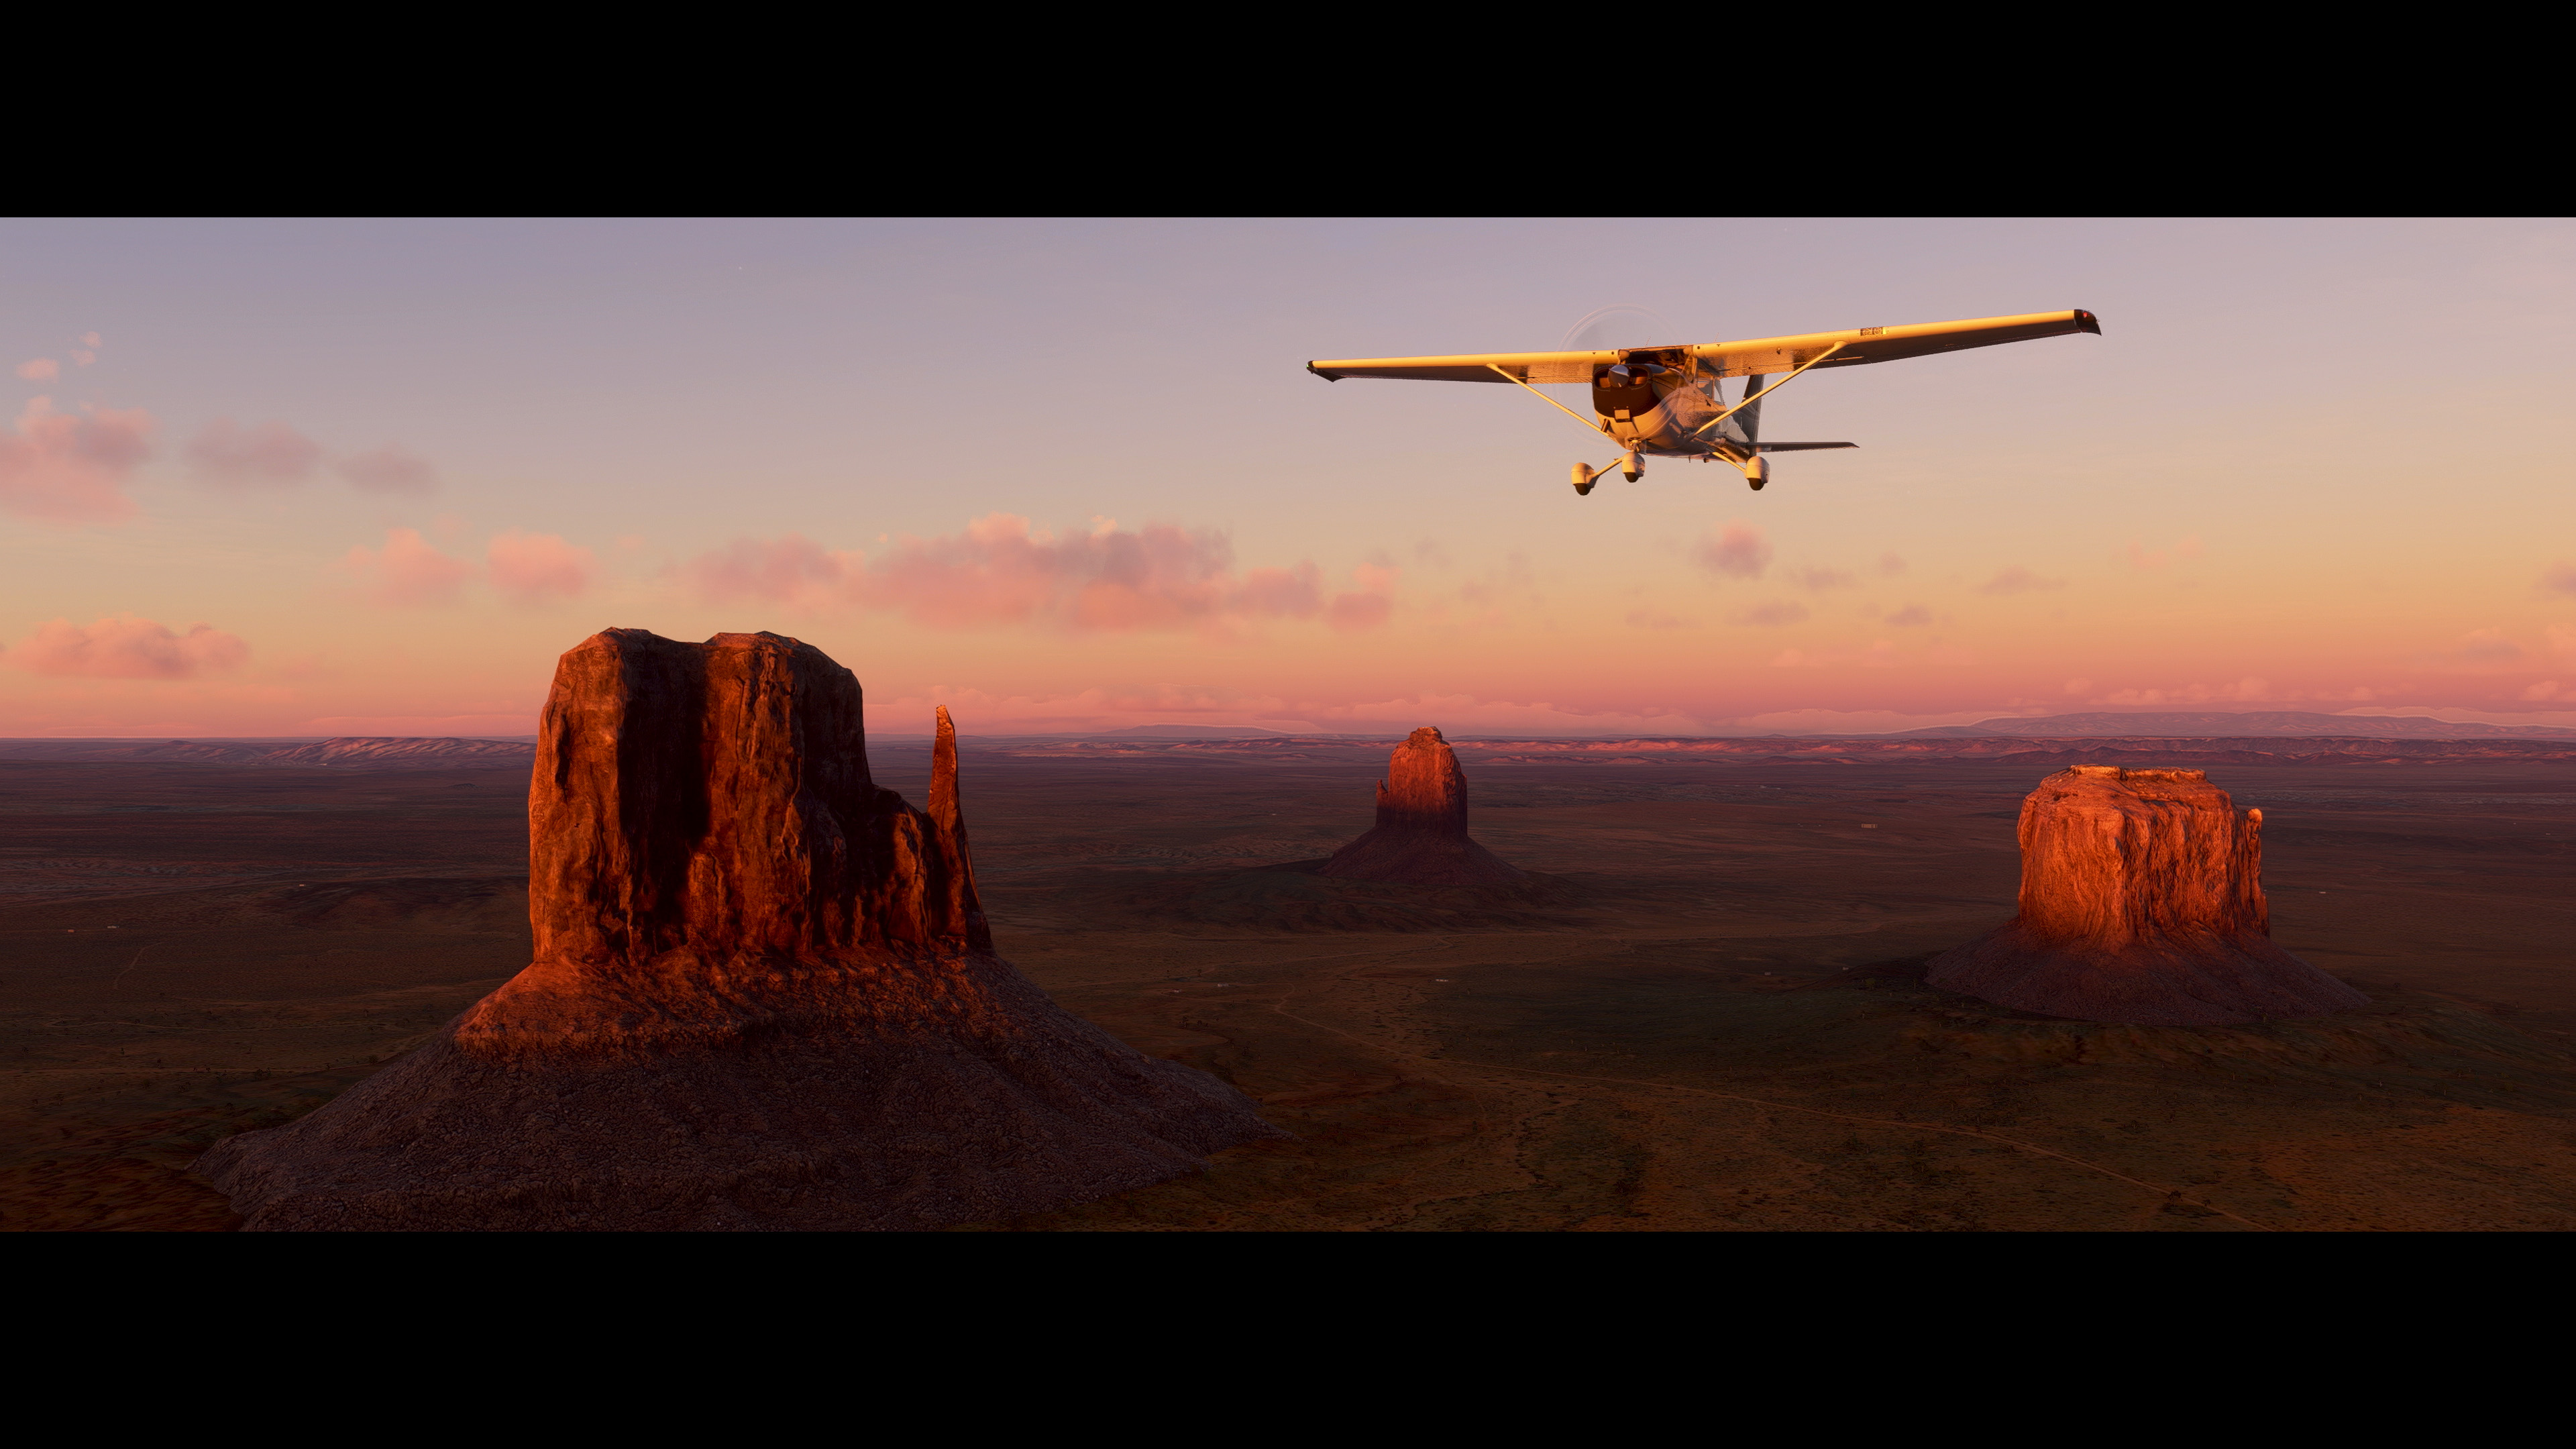 A plane flies over Arizona's Monument Valley in a screenshot from Microsoft Flight Simulator